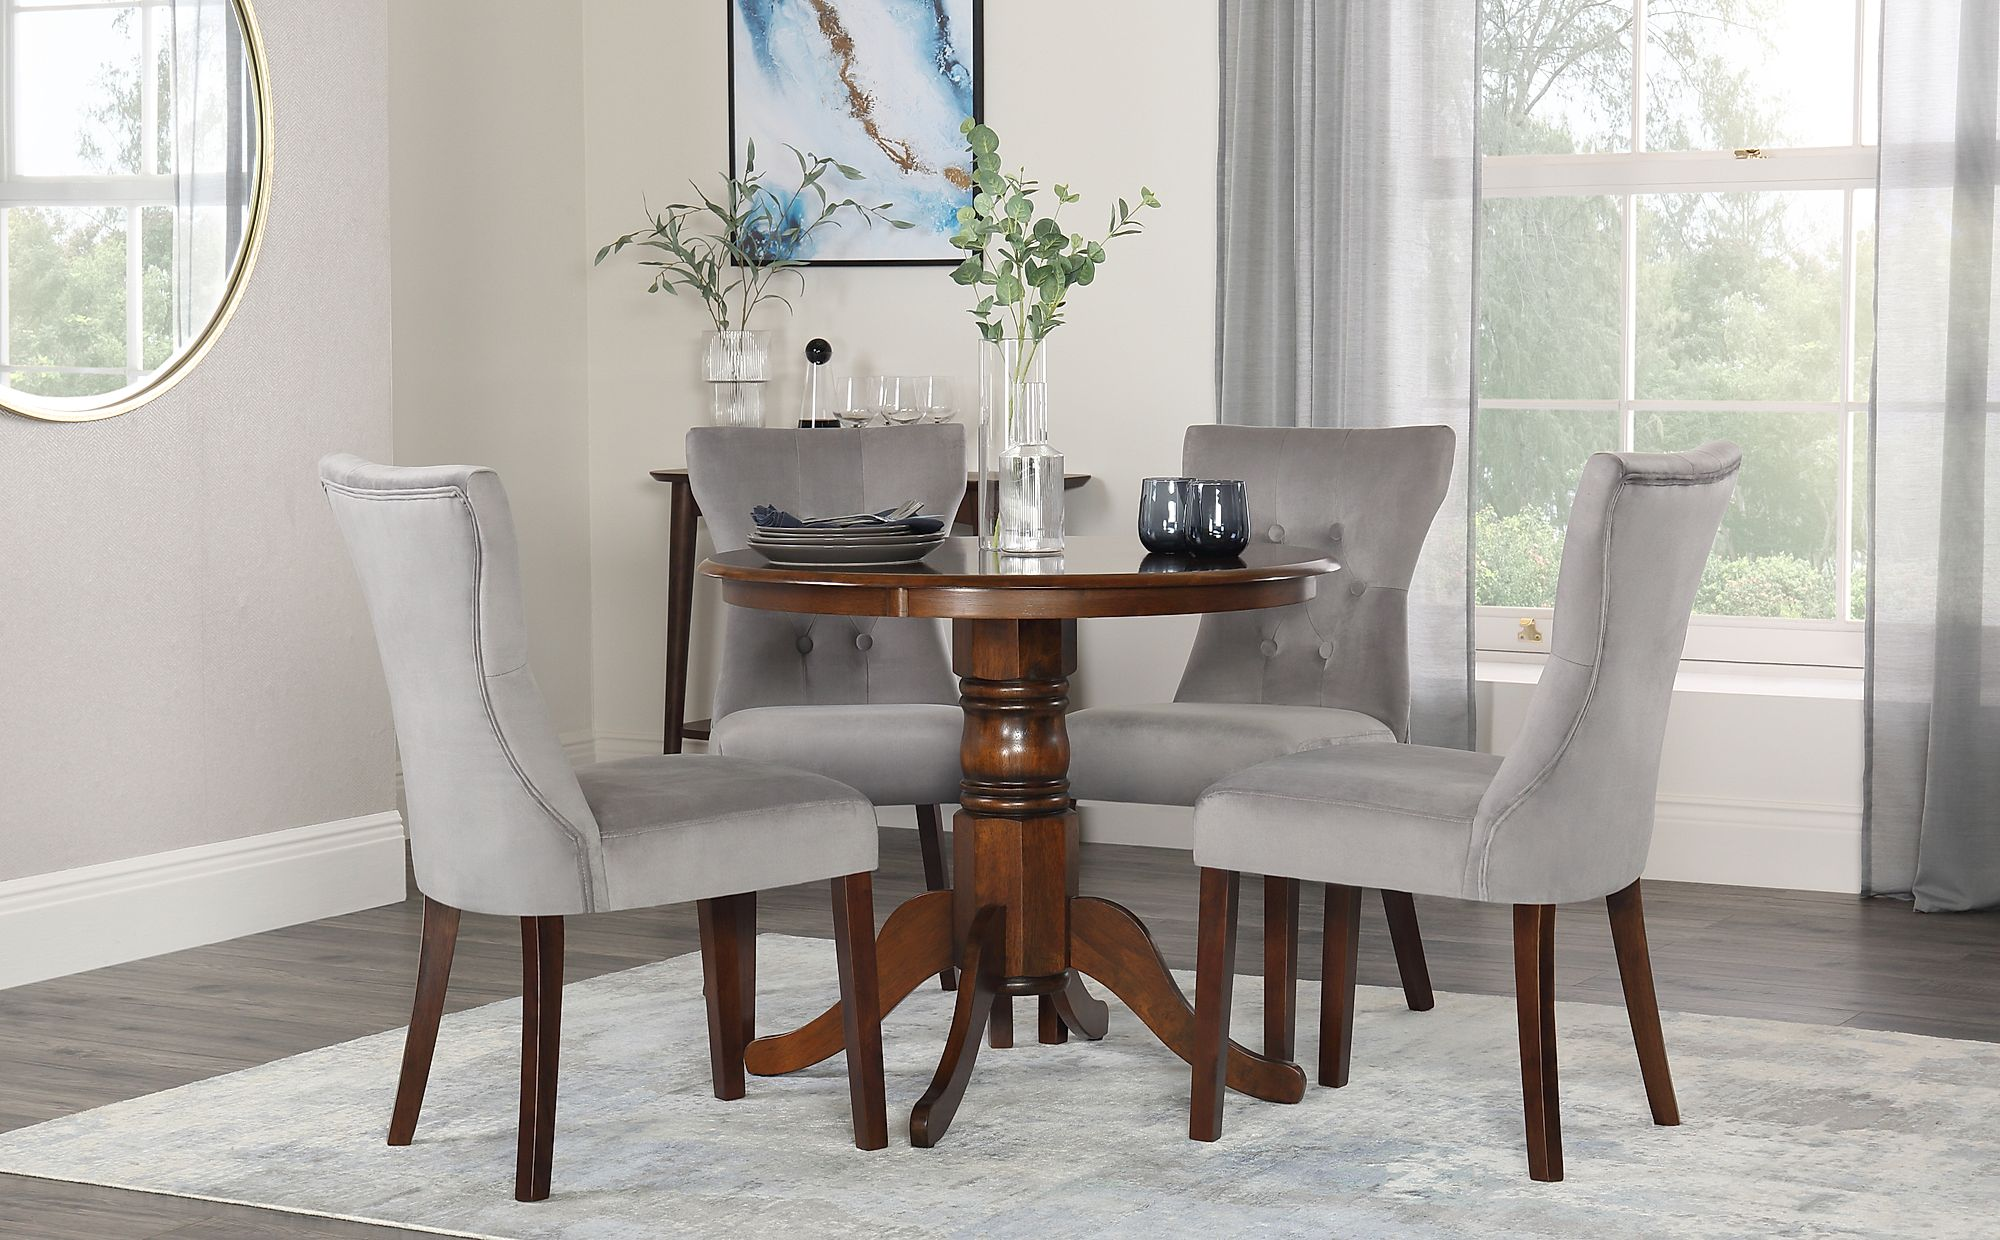 Kingston & Bewley Round Walnut Dining Table and 4 Chairs ...